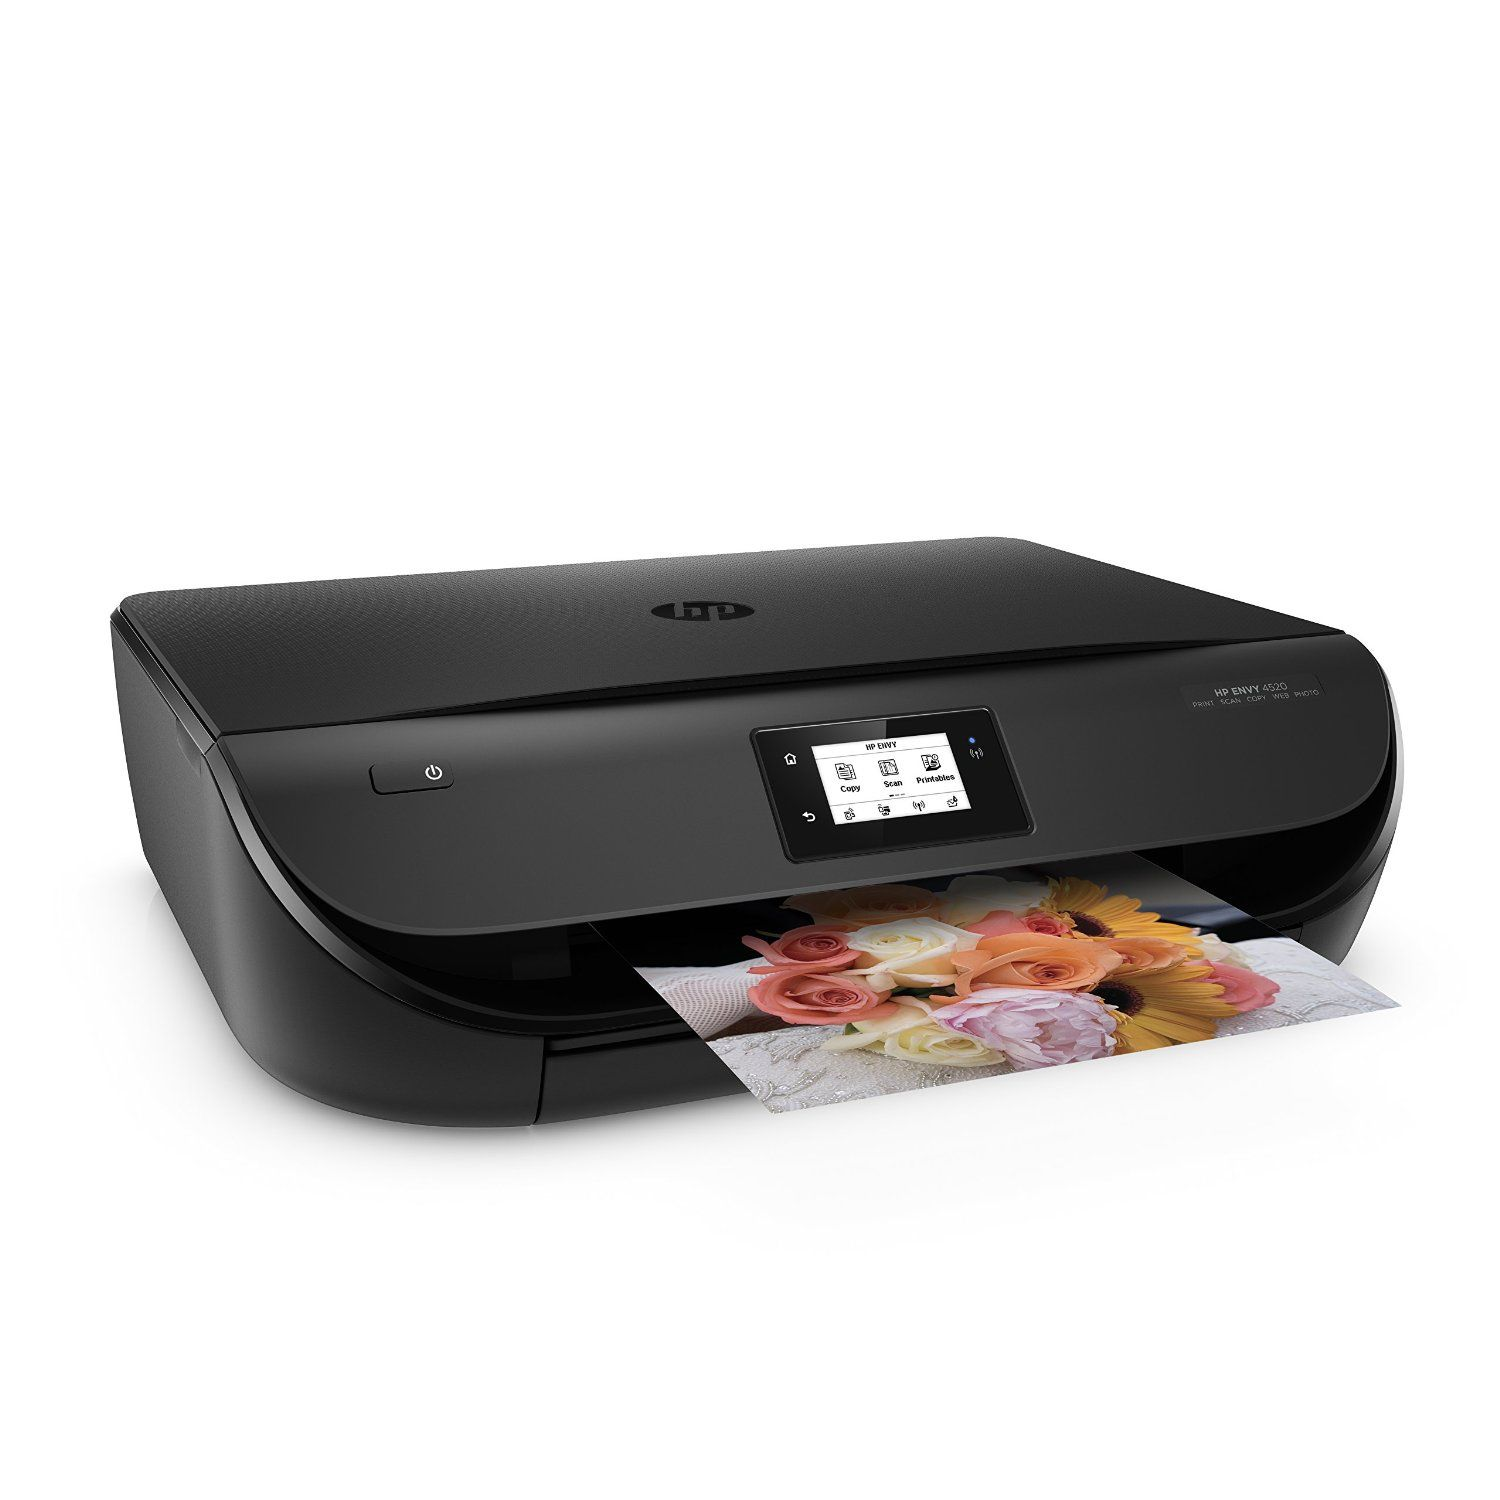 Amazoncom Hp Envy 4520 Wireless All In One Photo Printer With Ink Free Mobile Technology Printing Instant Ready F0v69a For Us 5999 Shipping Http Amznto